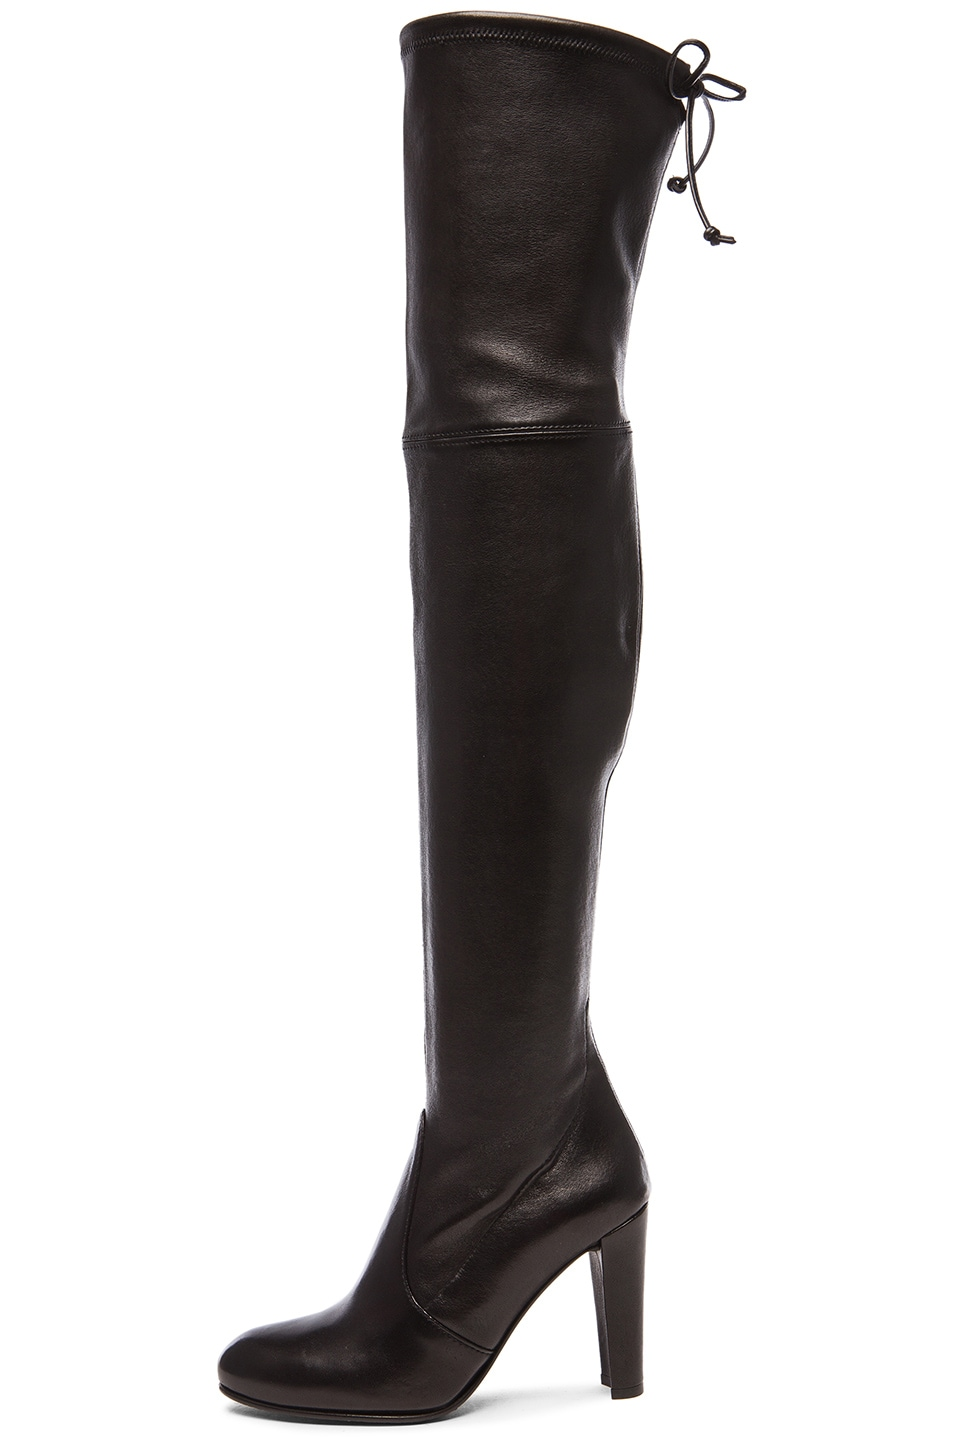 Image 5 of Stuart Weitzman Stretch Leather Highland Boots in Nero